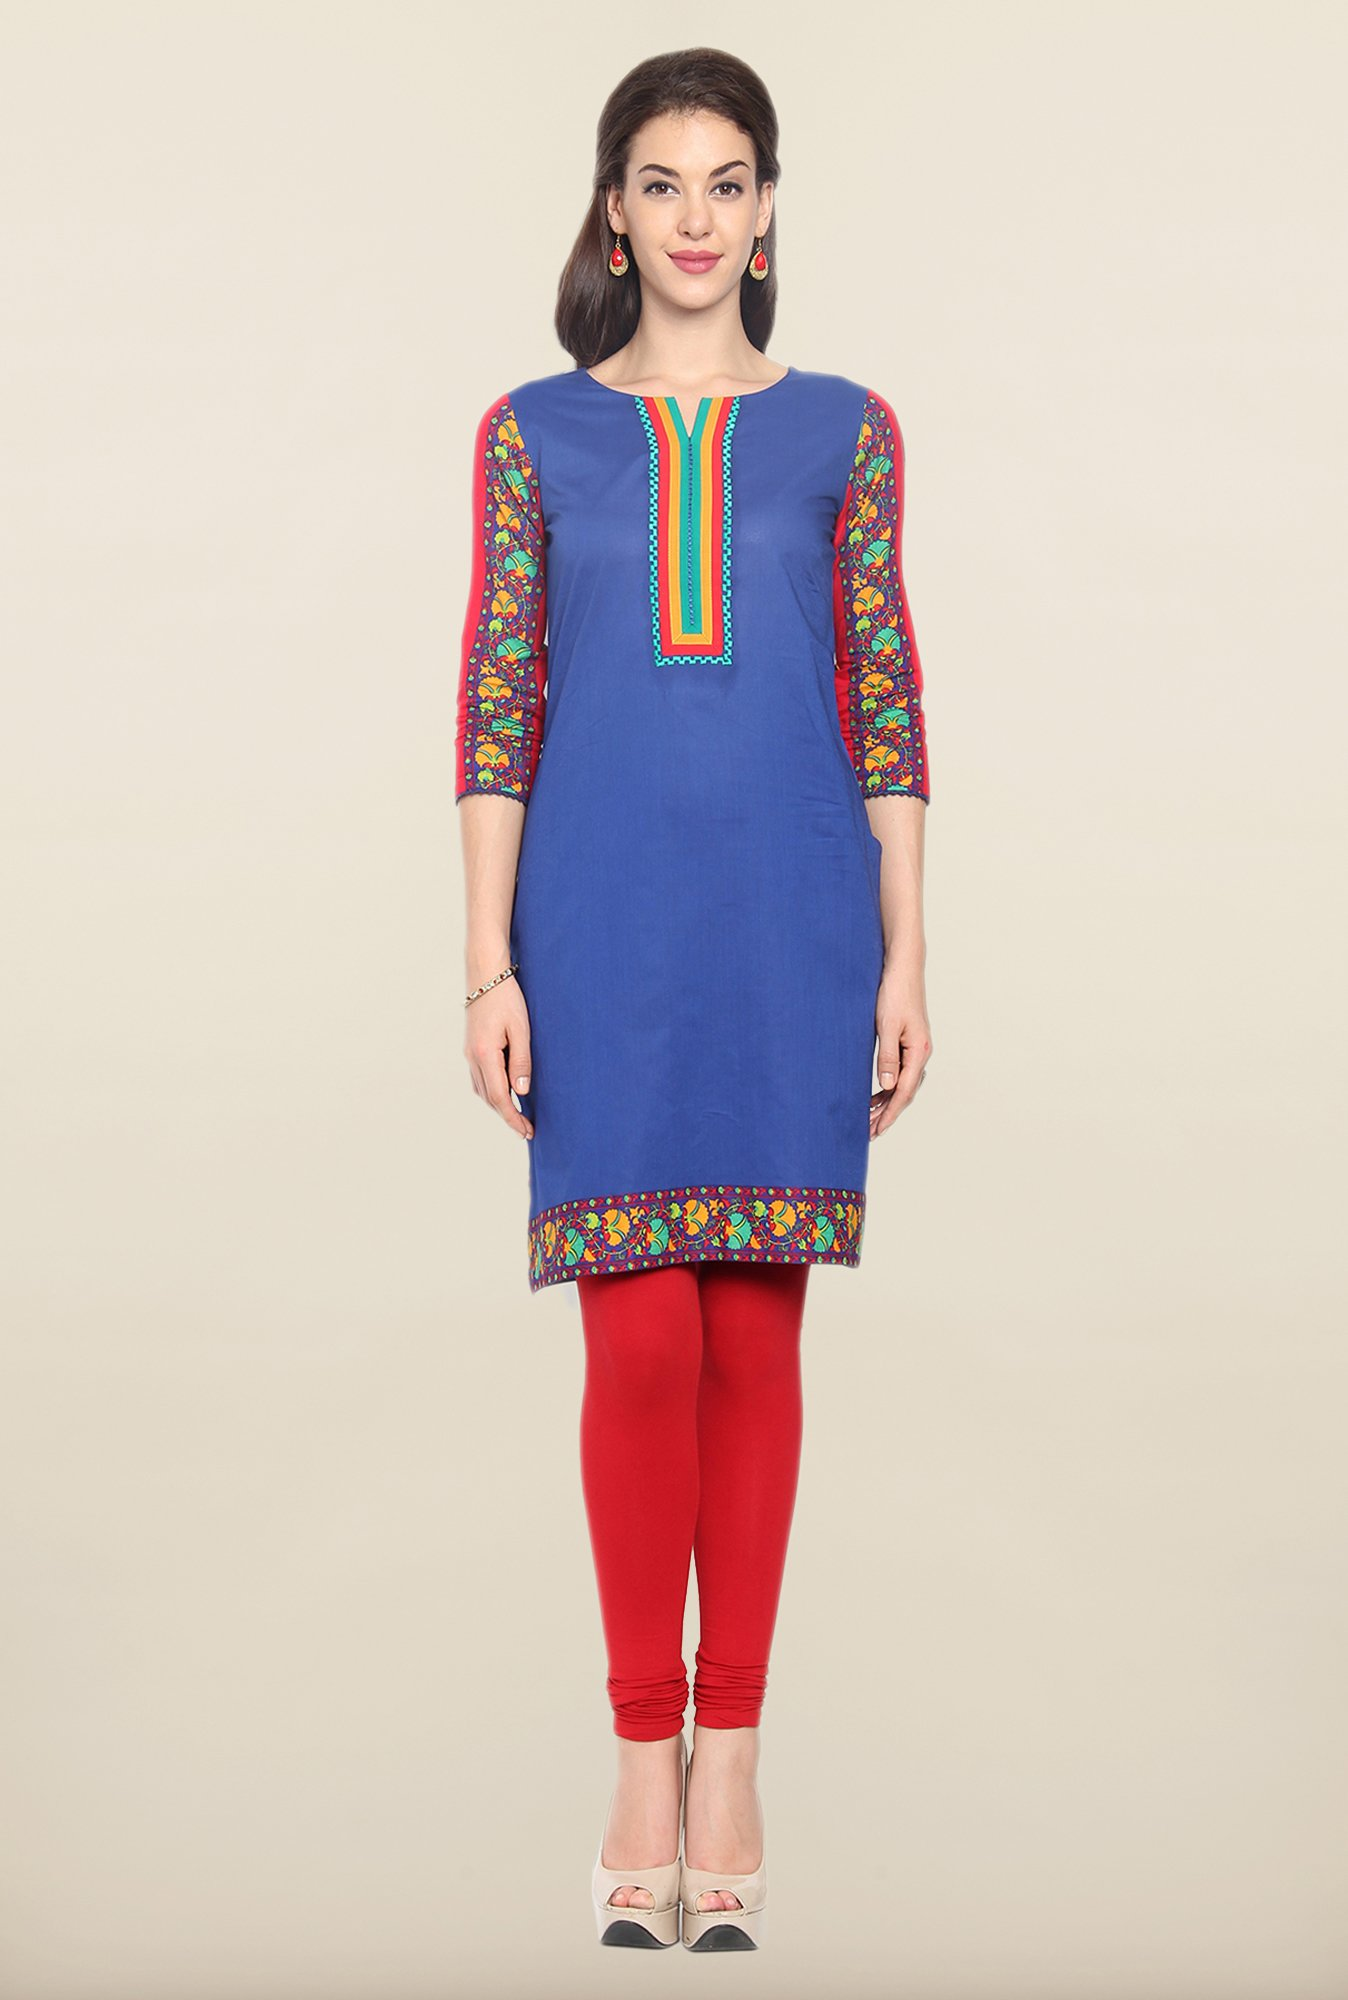 Soch Royal Blue Cotton Kurti